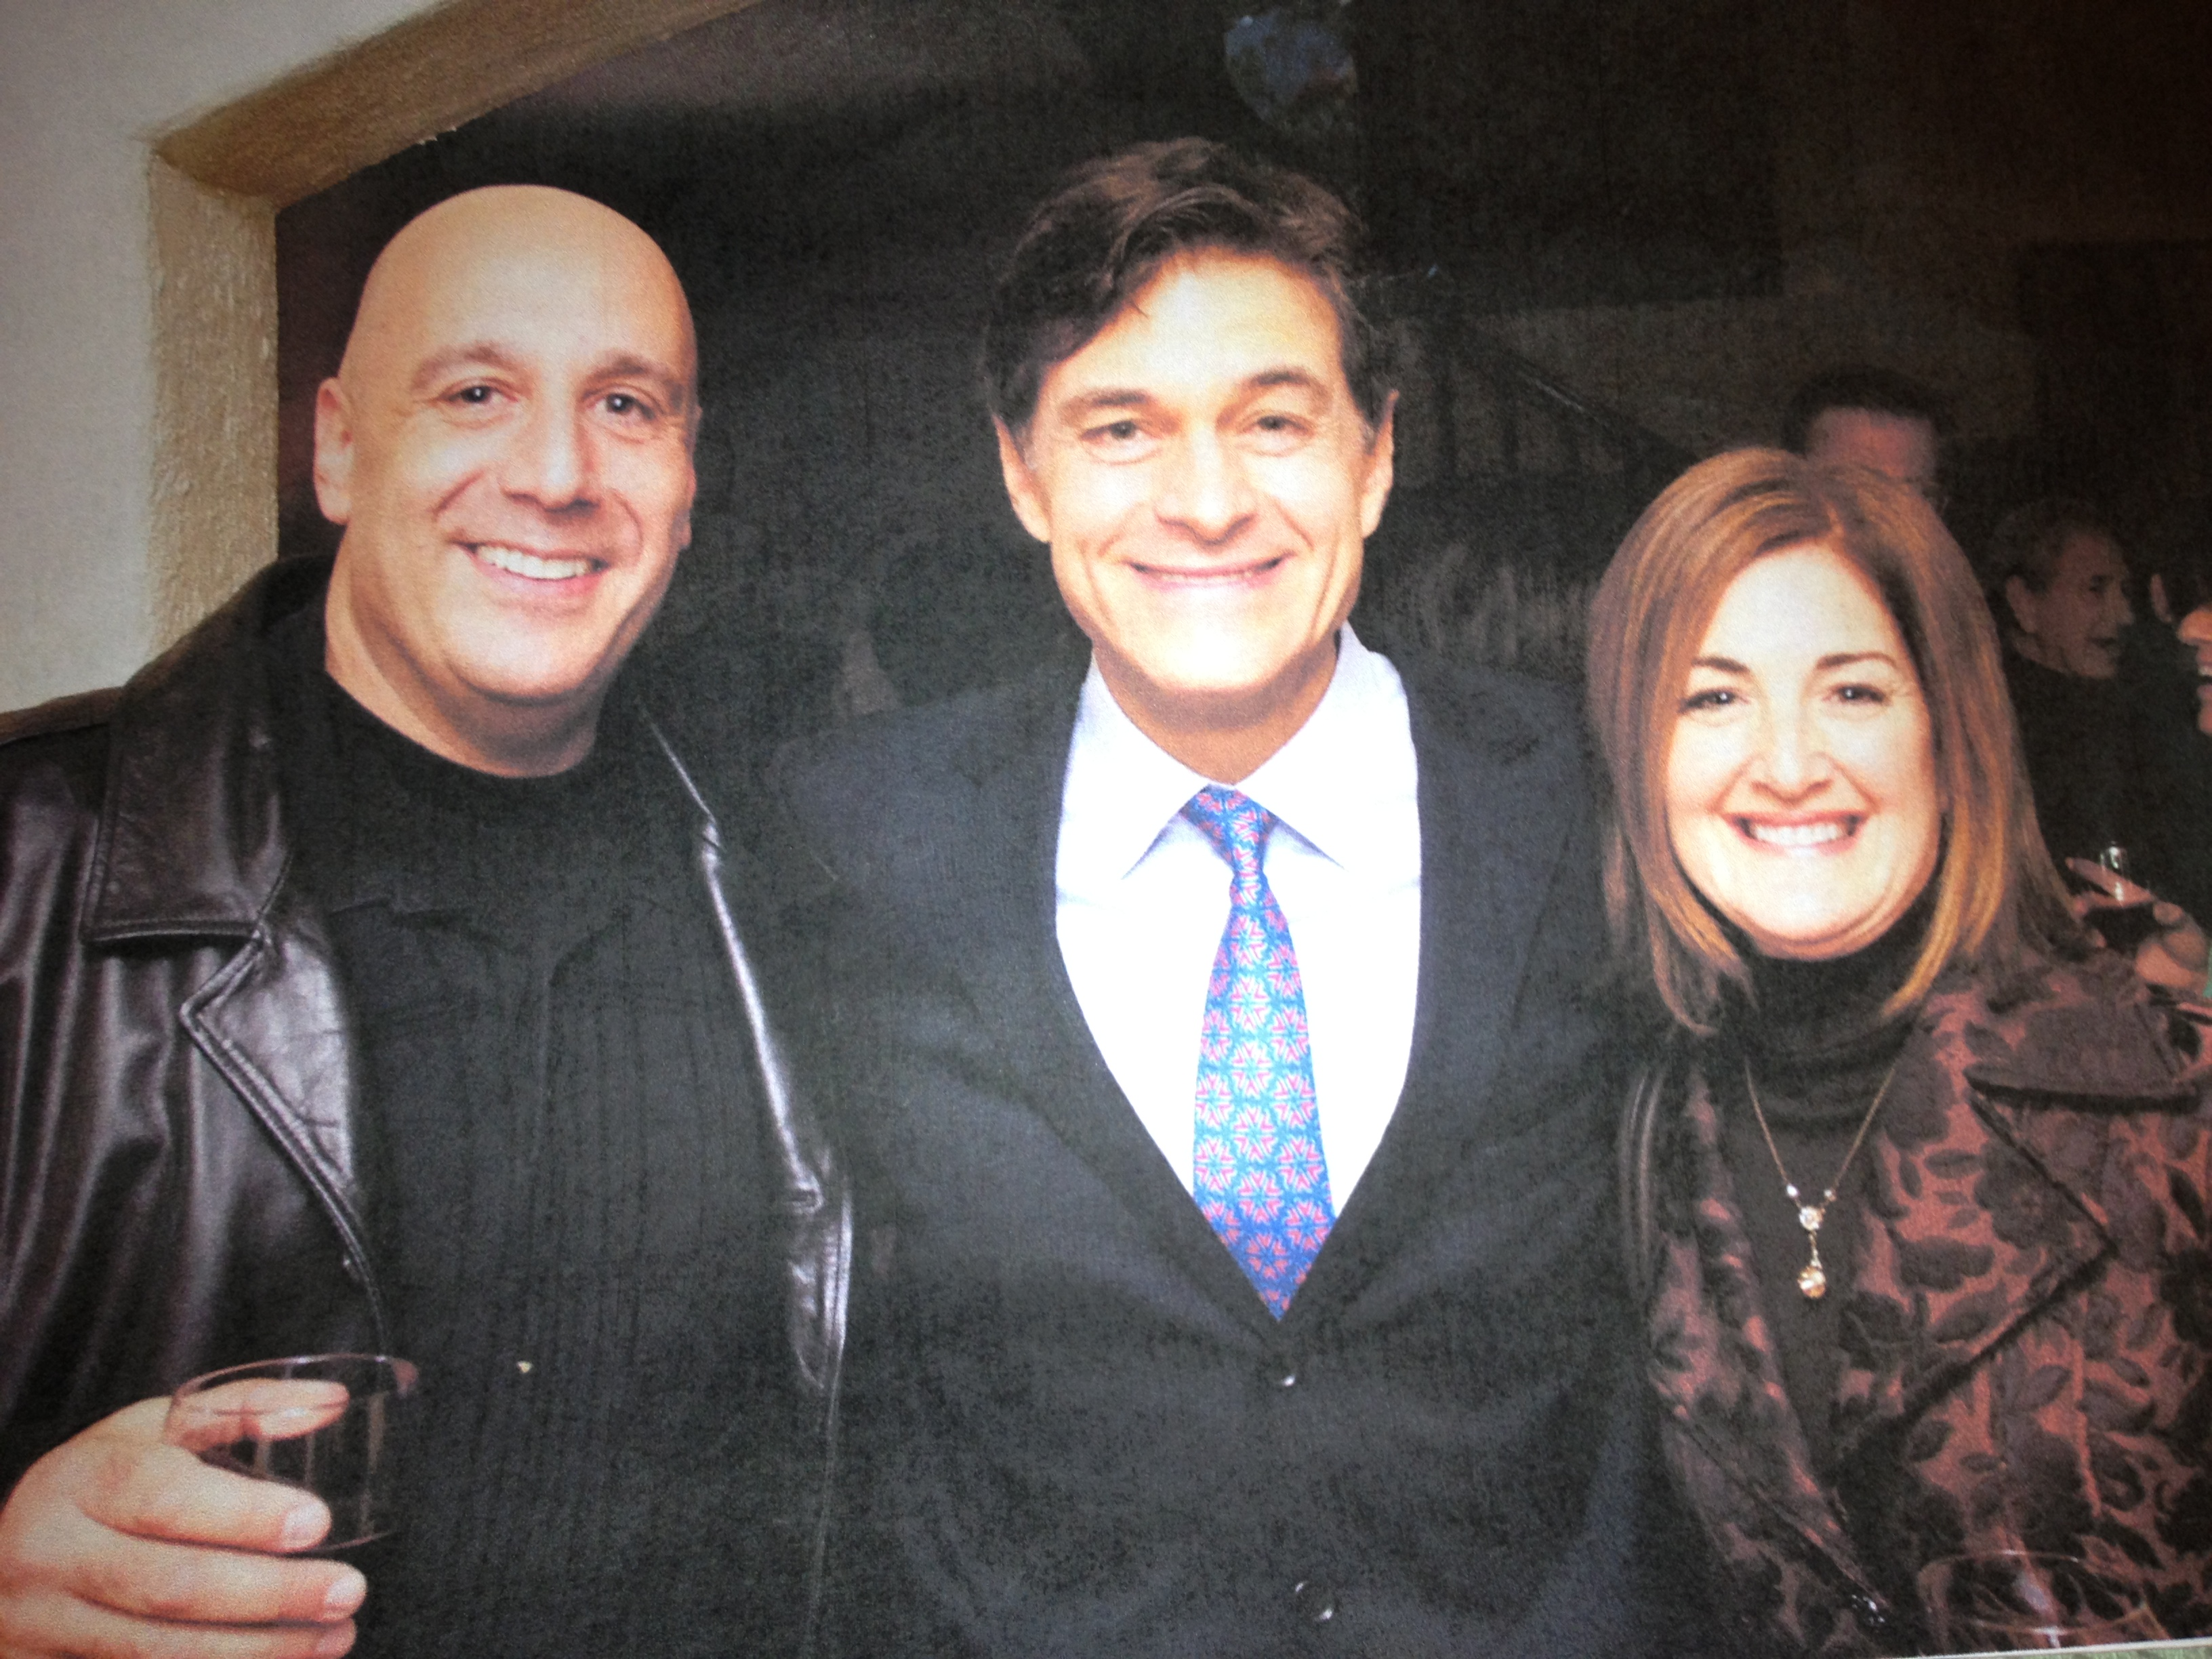 Alan and Holland with Dr. Oz after premiere of hospice video